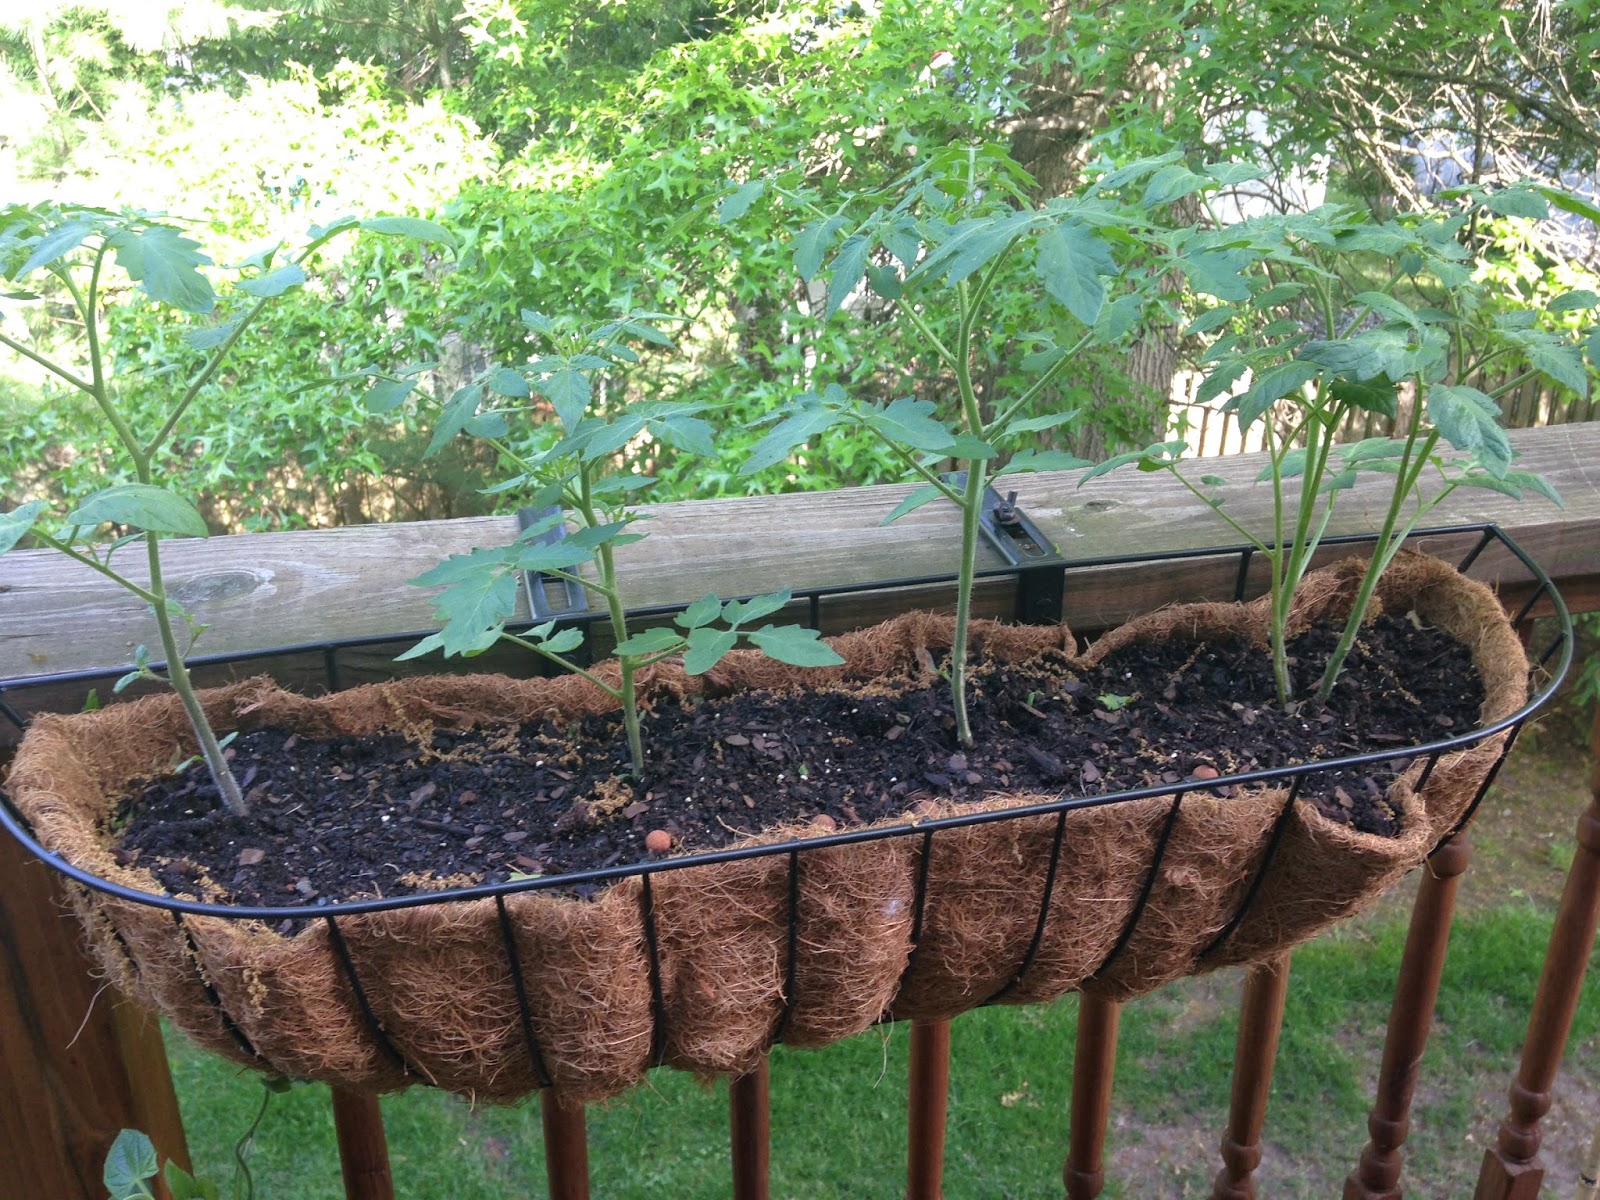 Here Are Our Tomatoes We Actually Saw Something On Pinterest Where They Planted Their Tomato Plants In A Hanging Basket Which Makes Them Grow Down Like